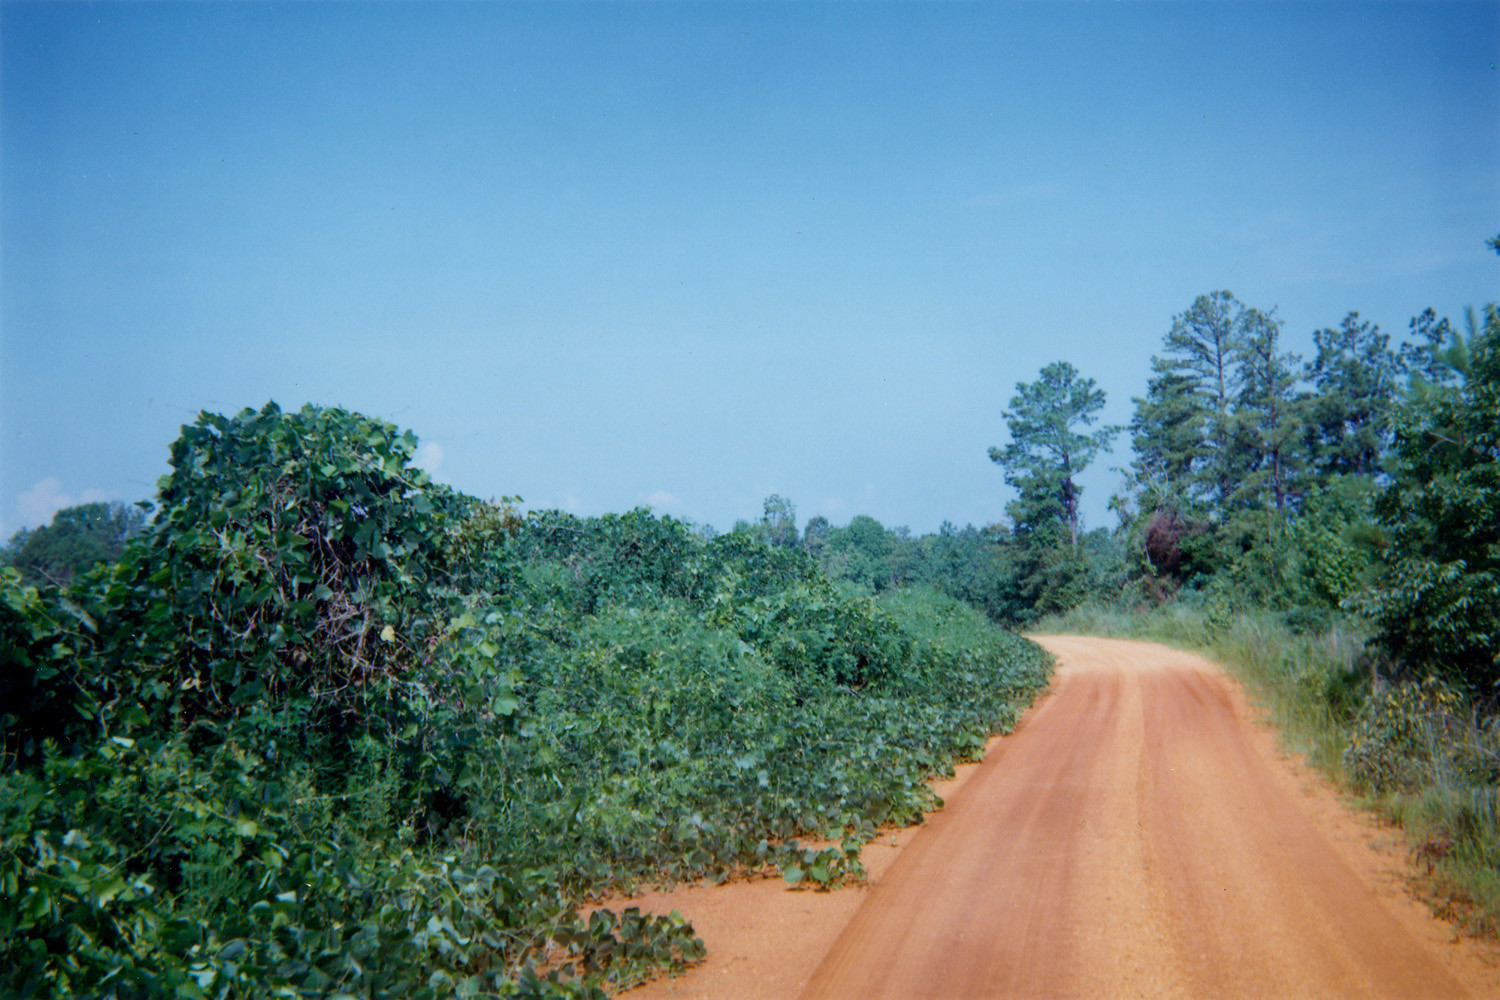 William Christenberry, Kudzu and Road, Hale County, Alabama, October, 1996